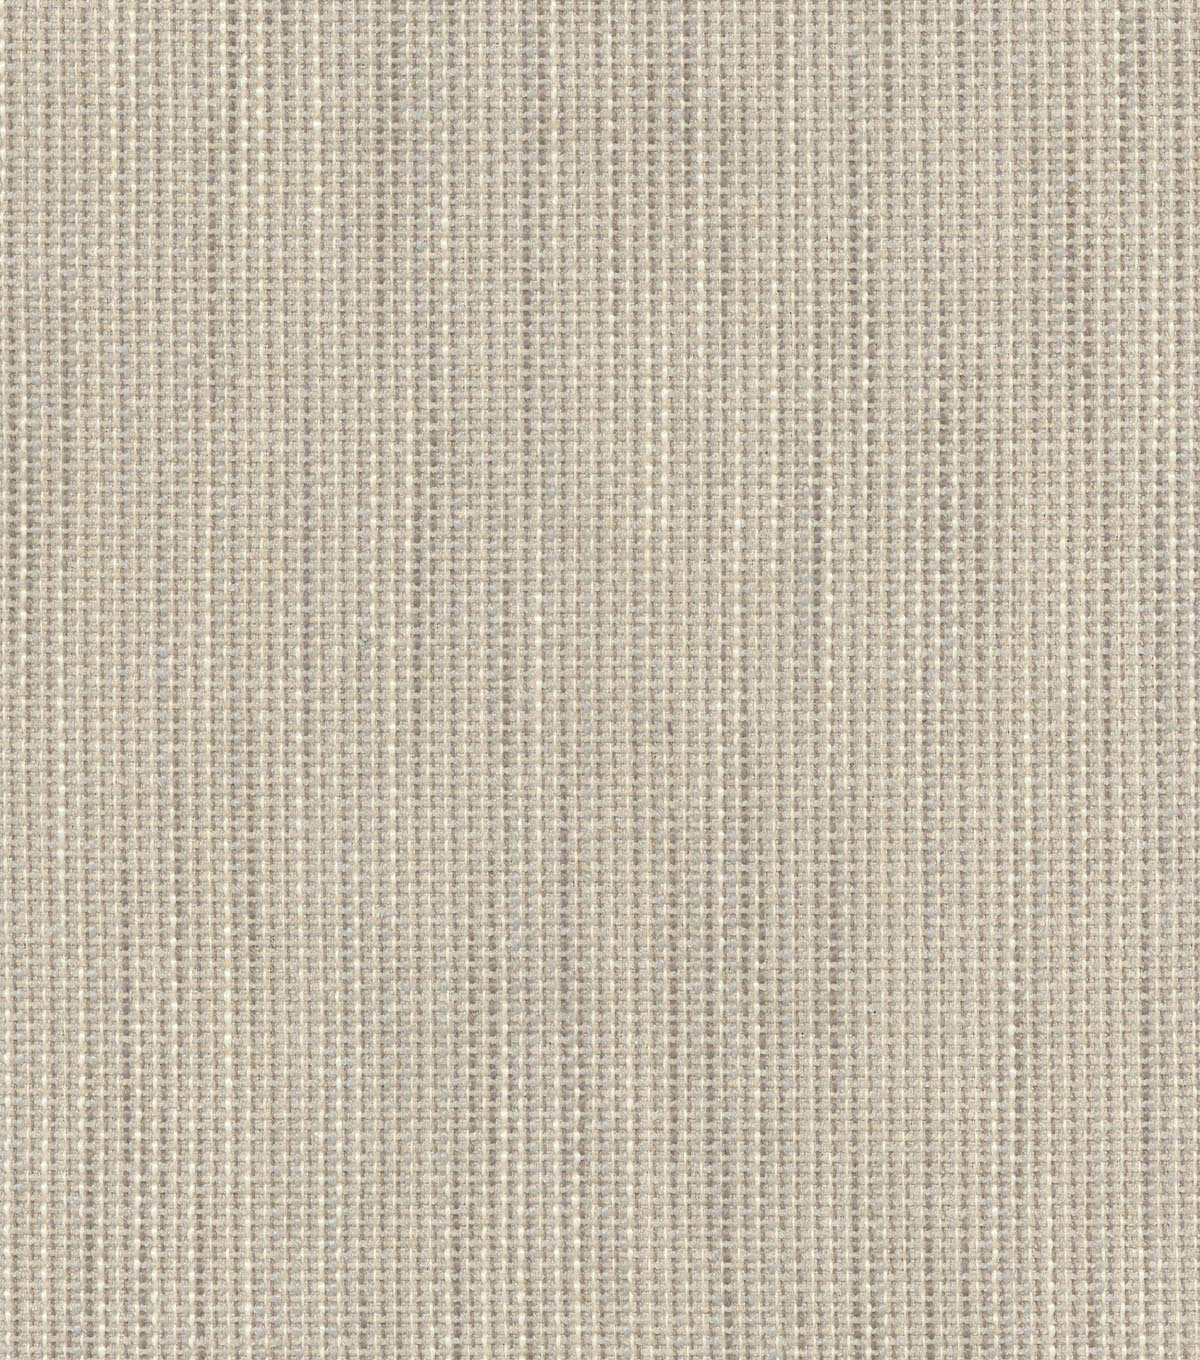 Waverly Upholstery Fabric-Varick/Shale